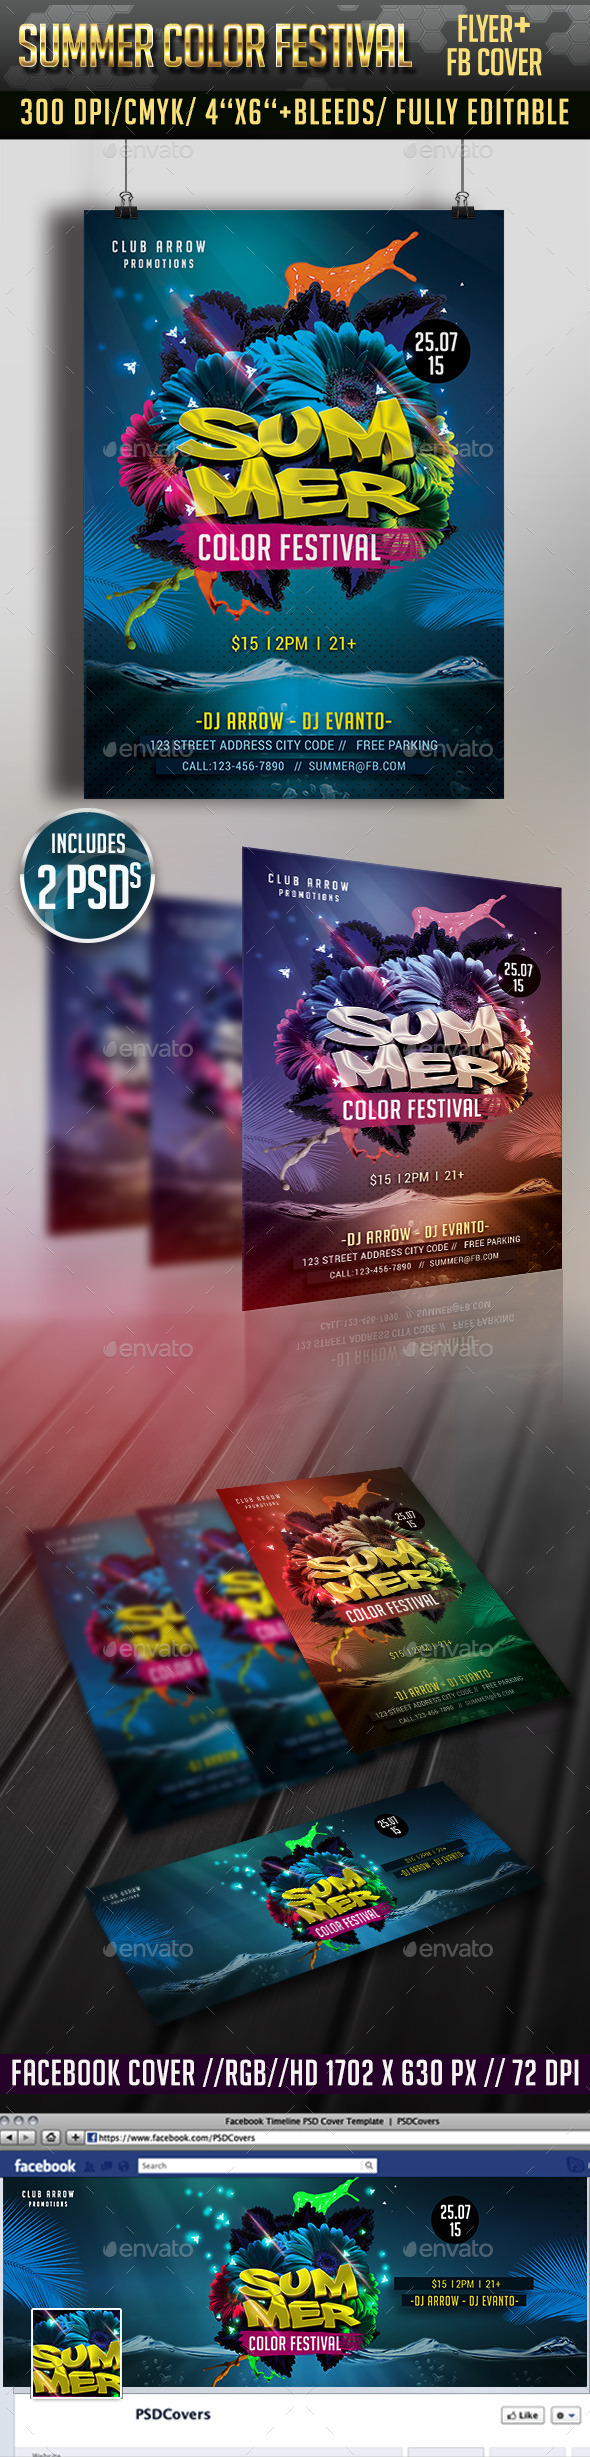 GraphicRiver Summer Color Festival Flyer & Facebook Cover 11912491